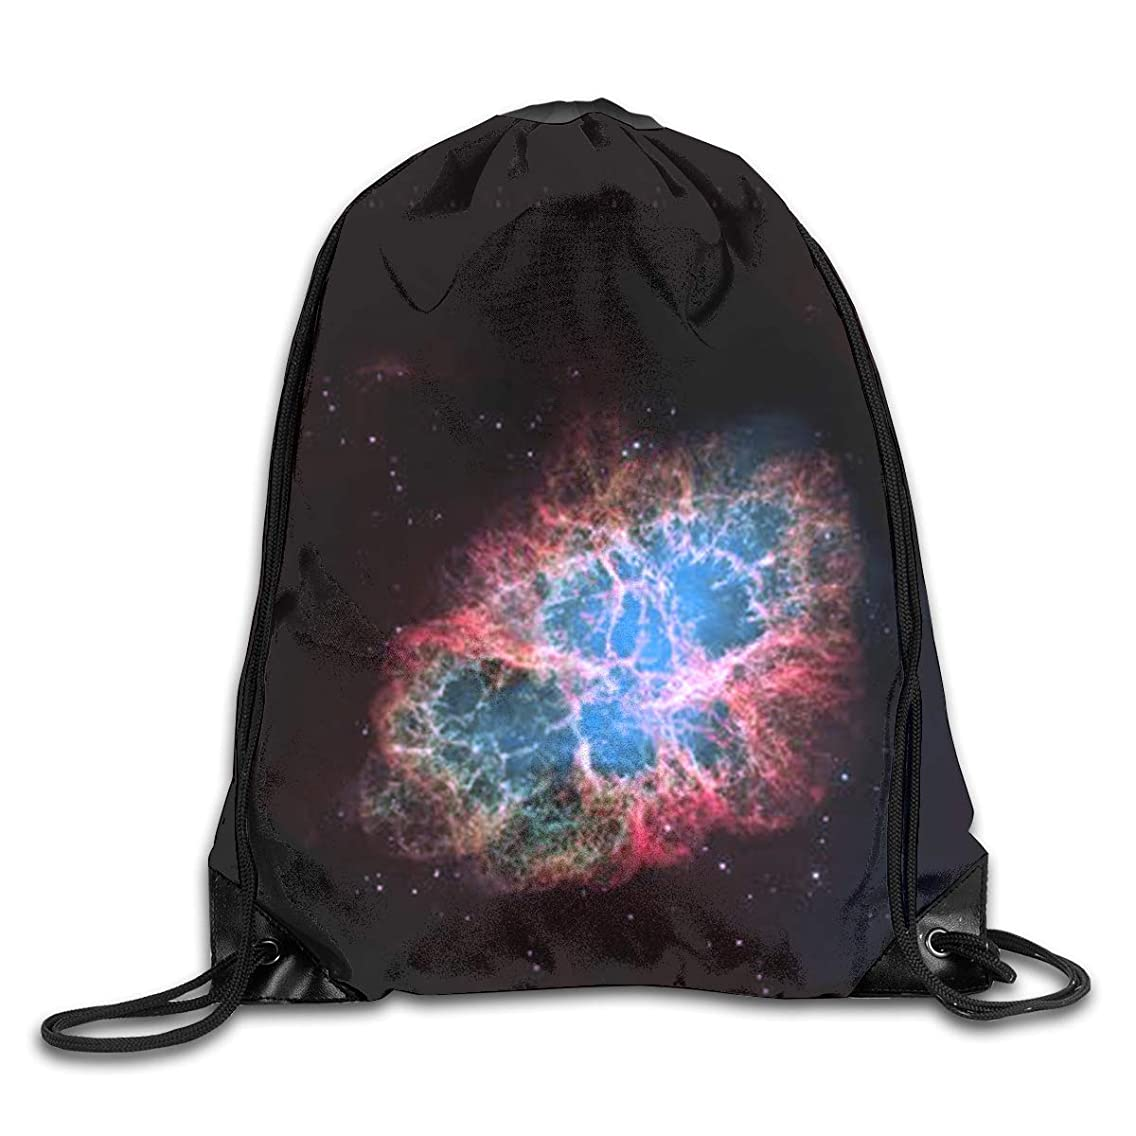 Amazing Galaxy Men & Women Sport Gym Sack Dancing Bag Drawstring Backpack For Beach Hiking Travel Bags